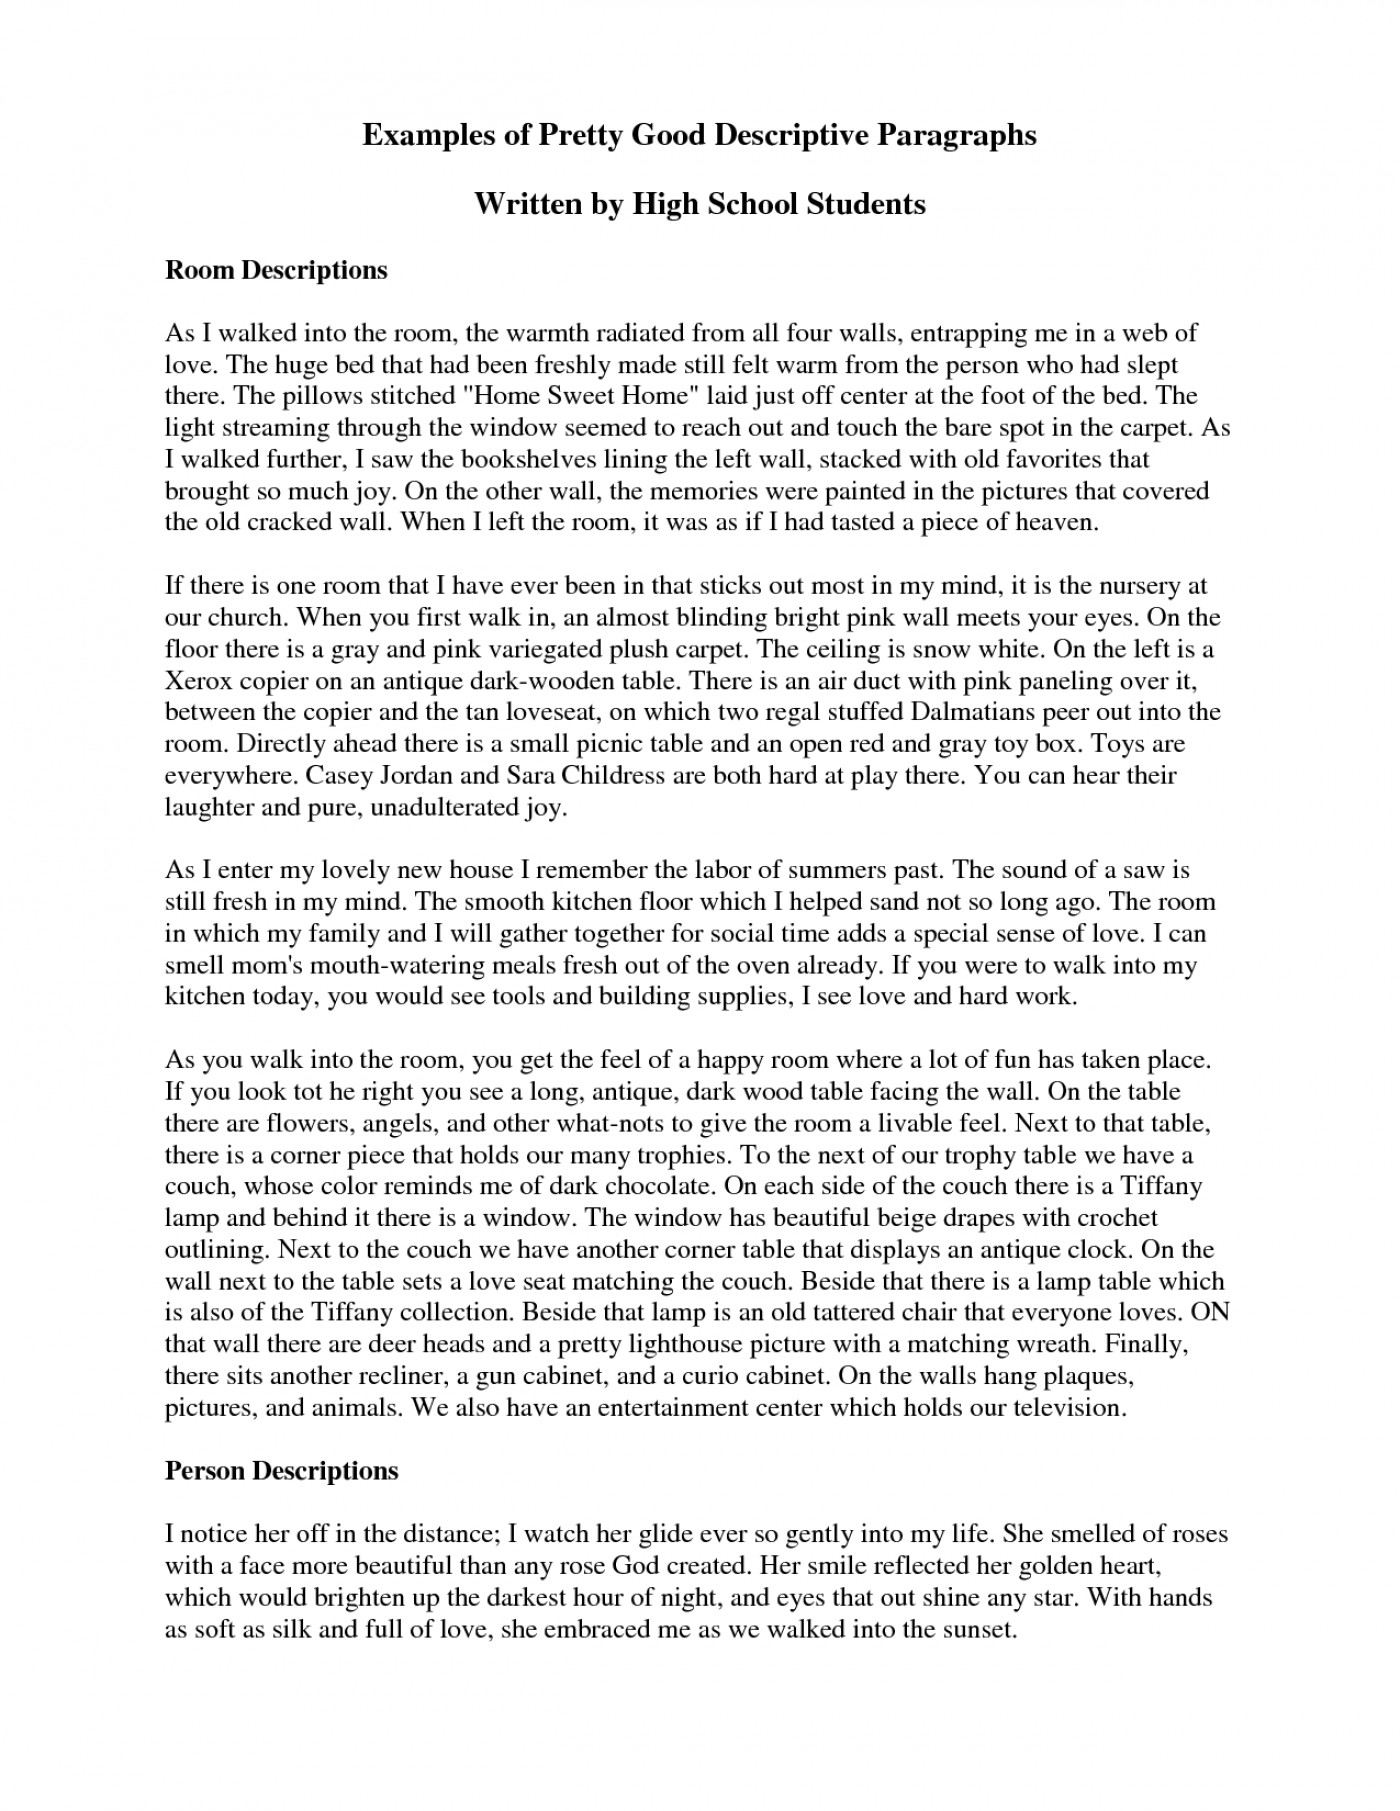 Cyberbullying essay papers online